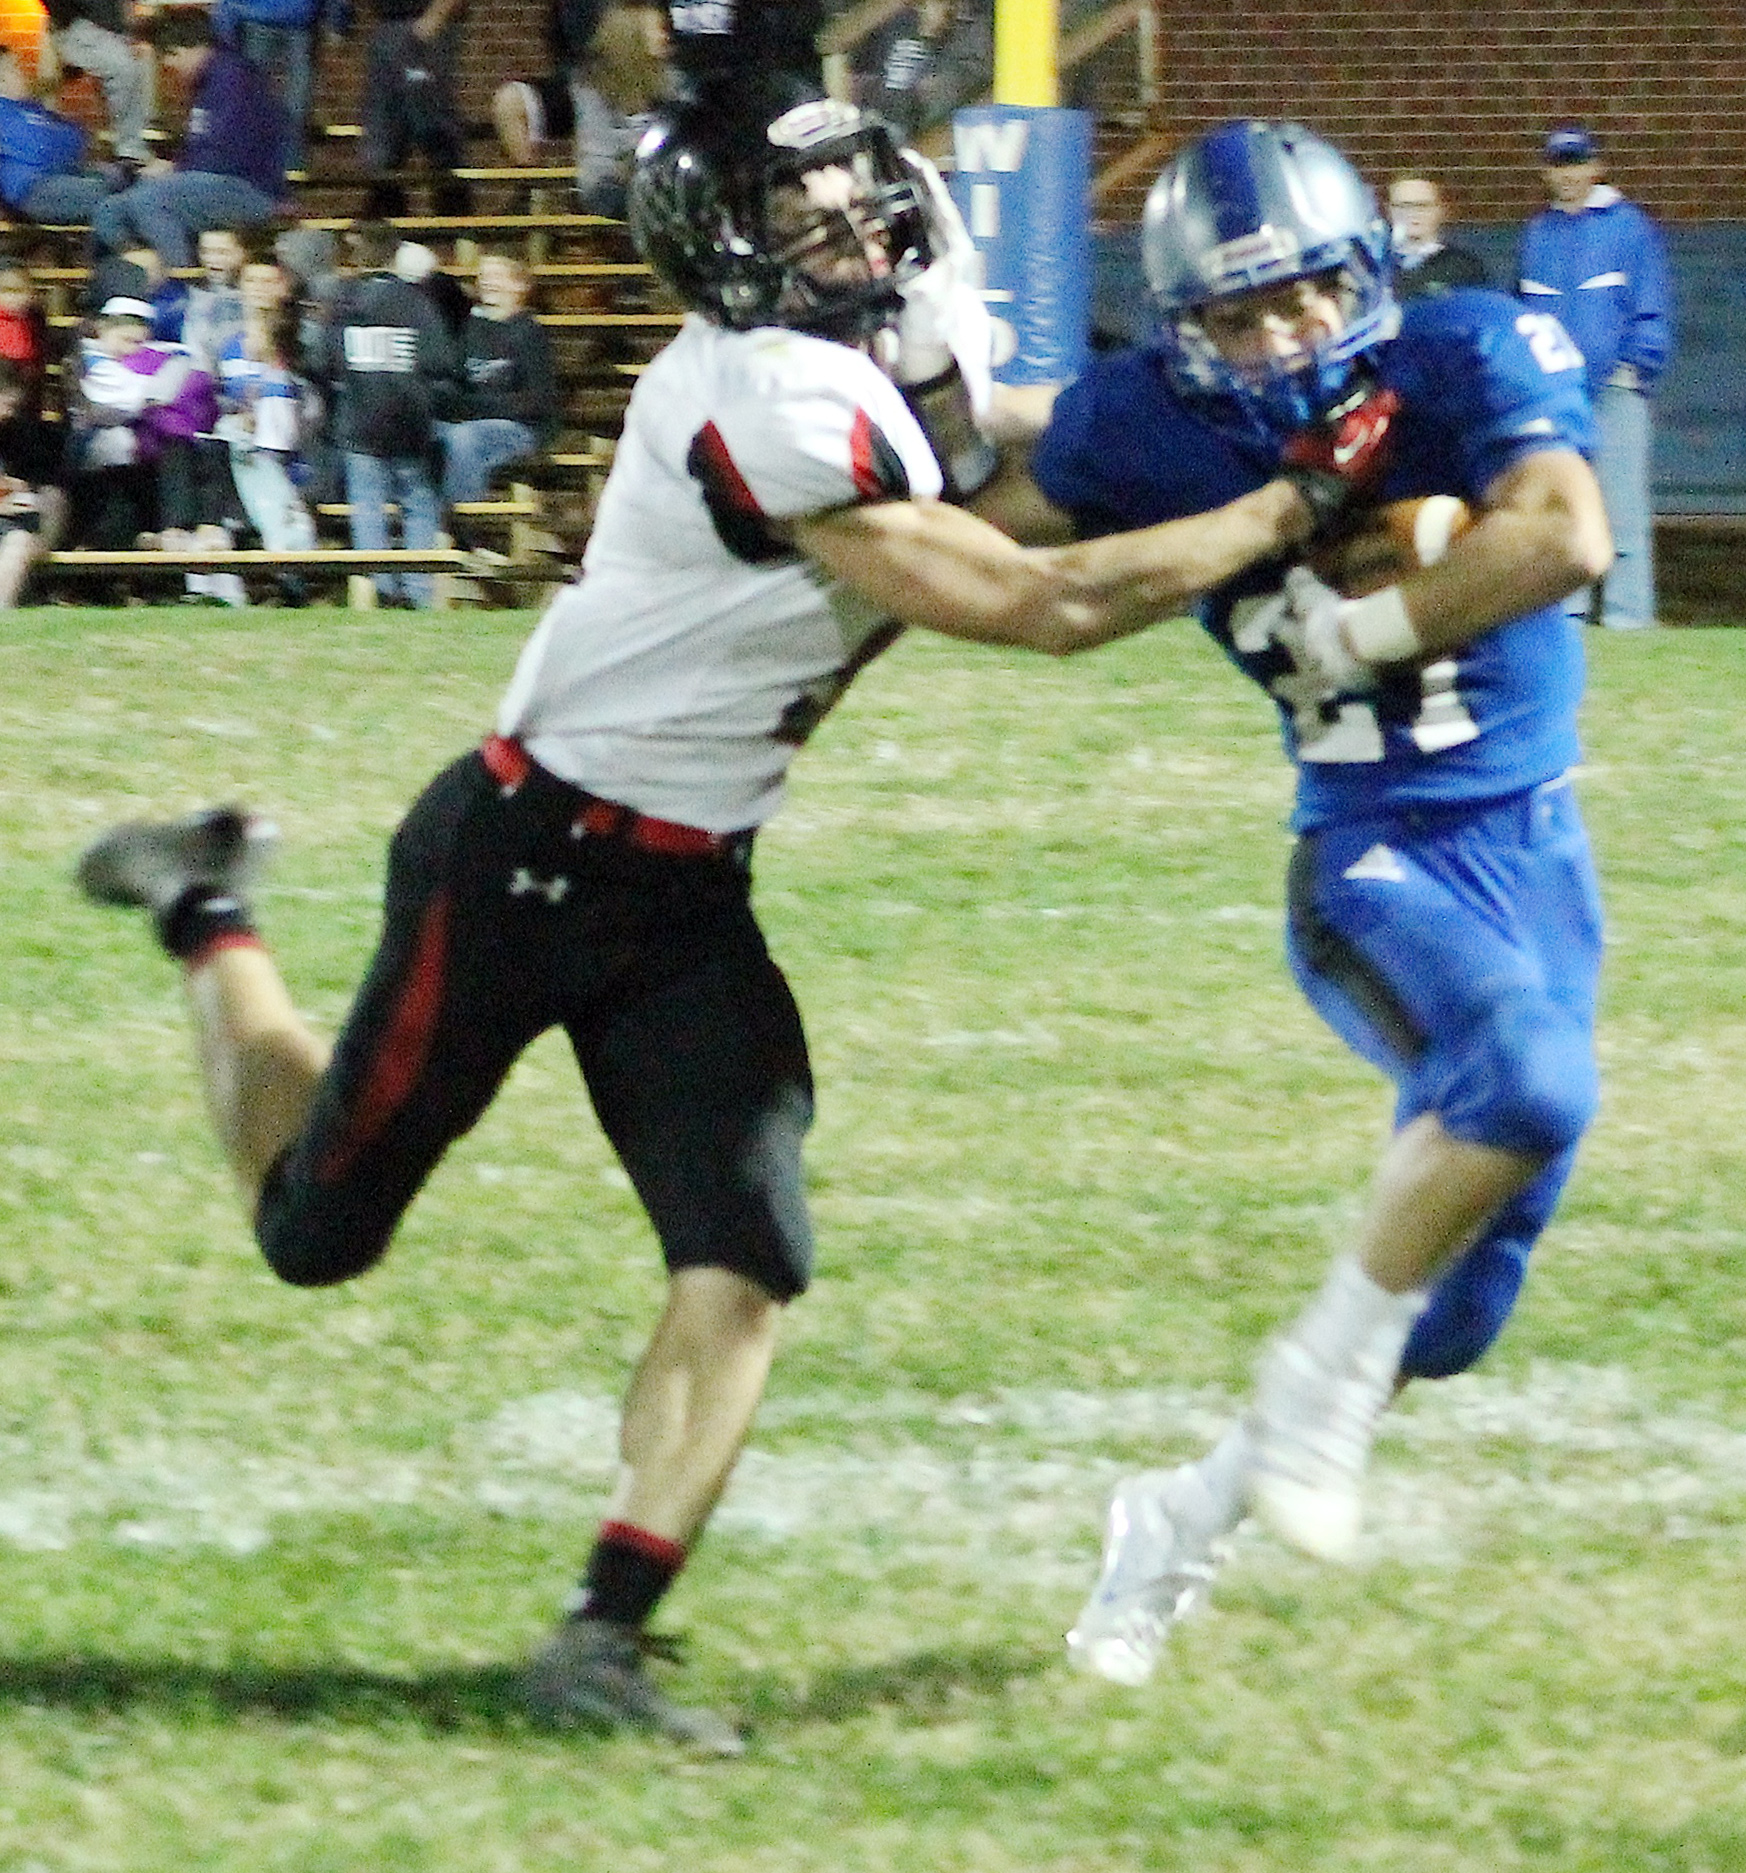 Running back Justin Pool (right) tries to stiff arm a Tiger defender late in the game against Jeff West as Holton works to run out the clock.